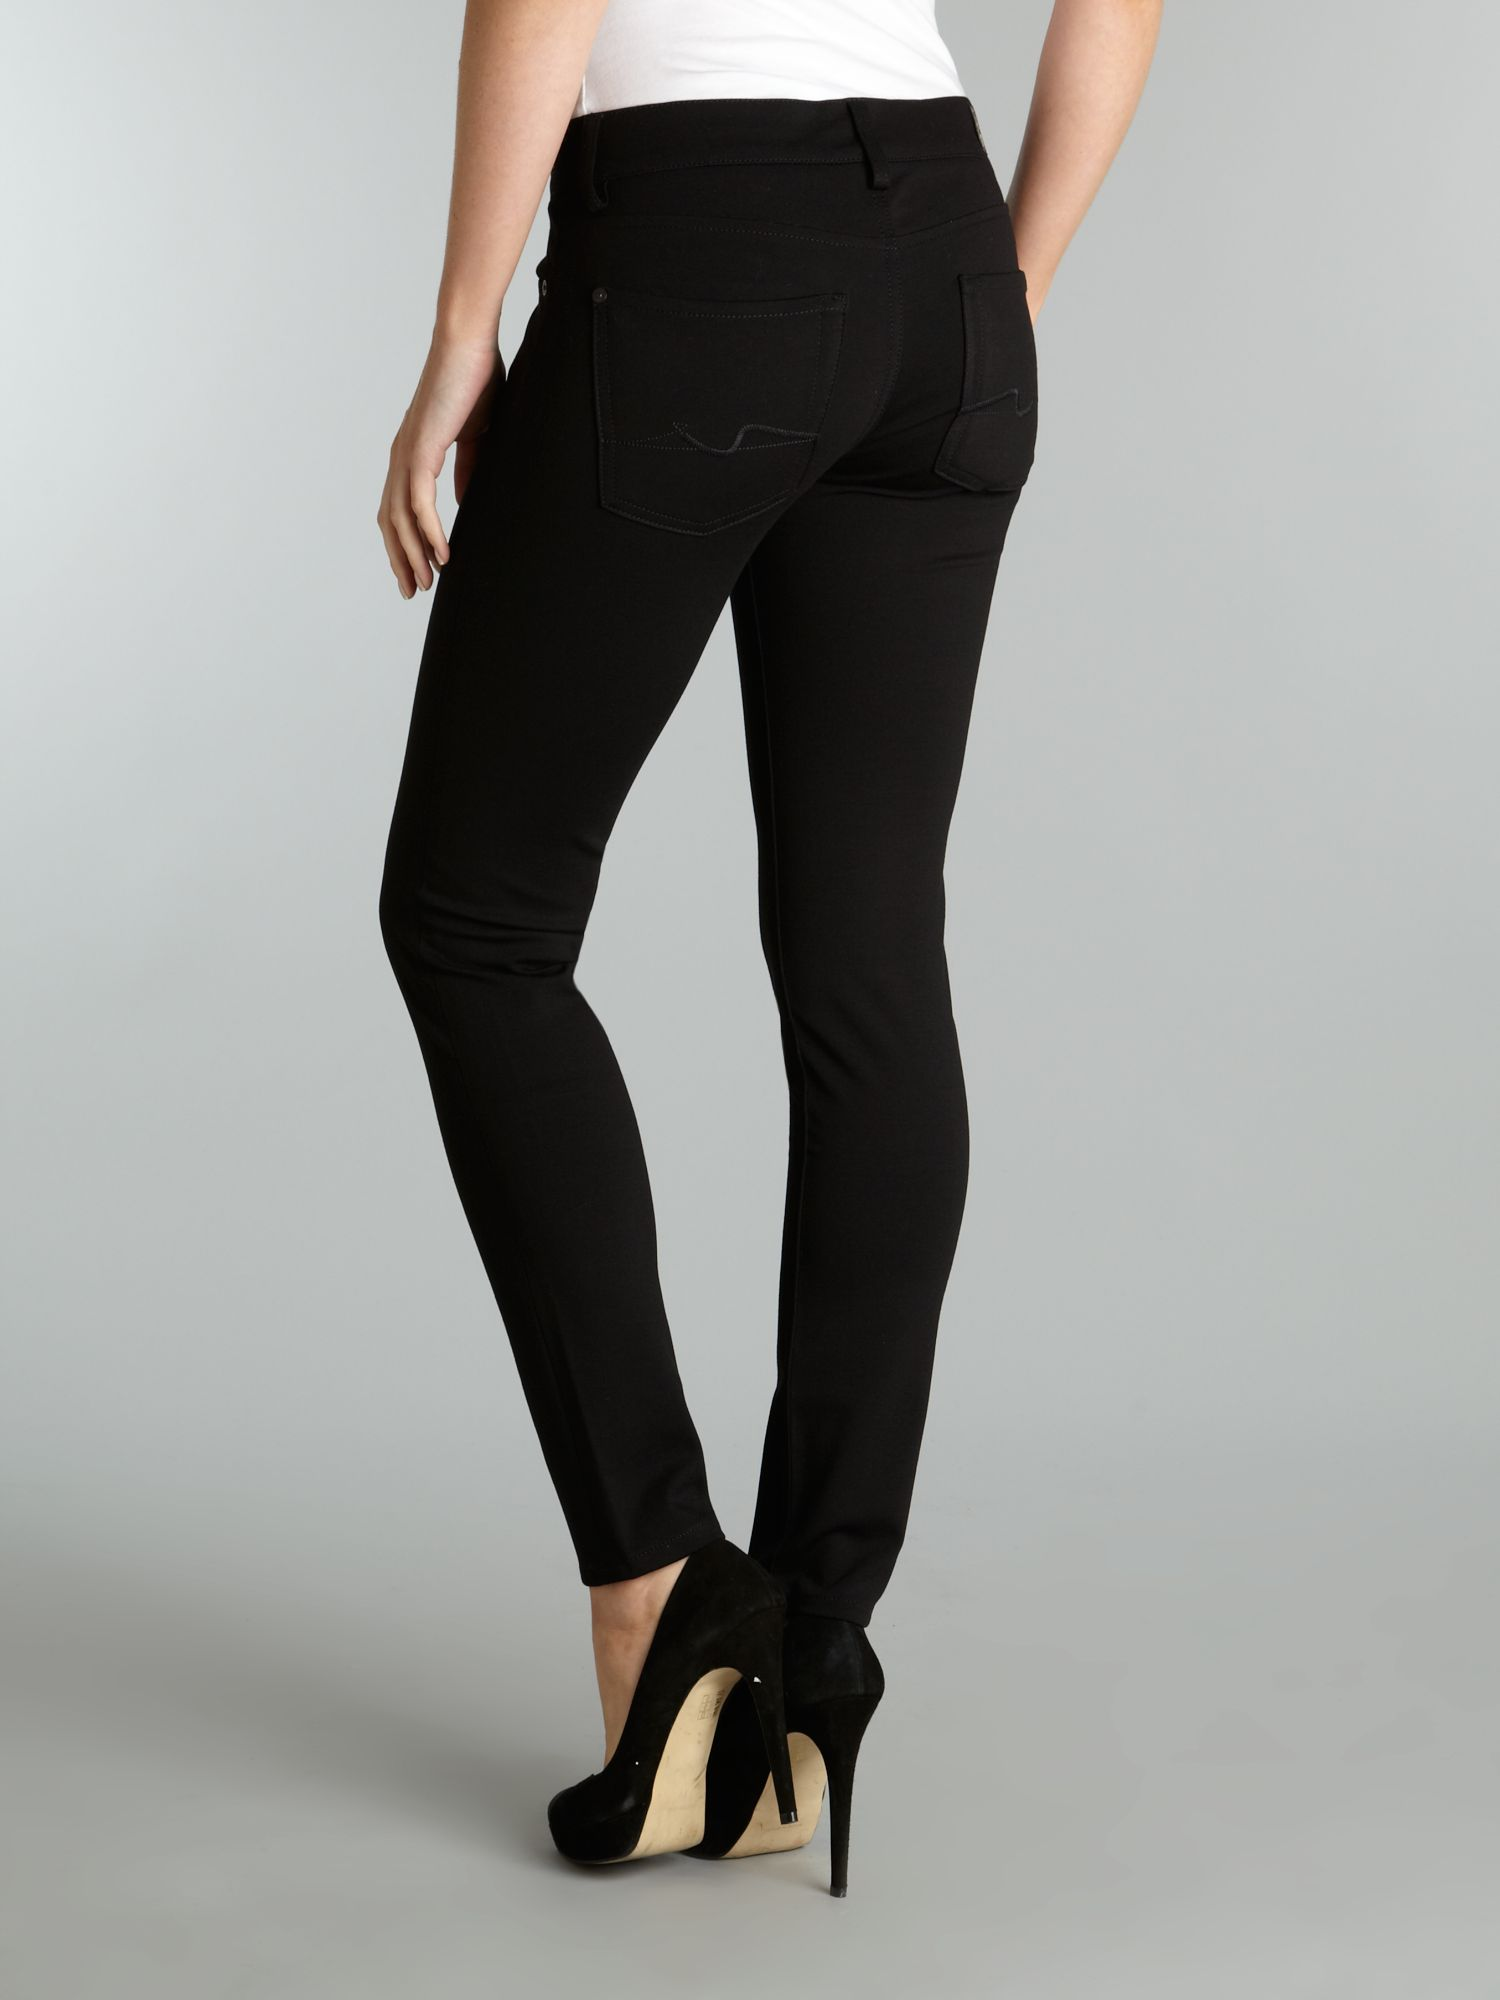 Skinny jegging in Gwenevere jean